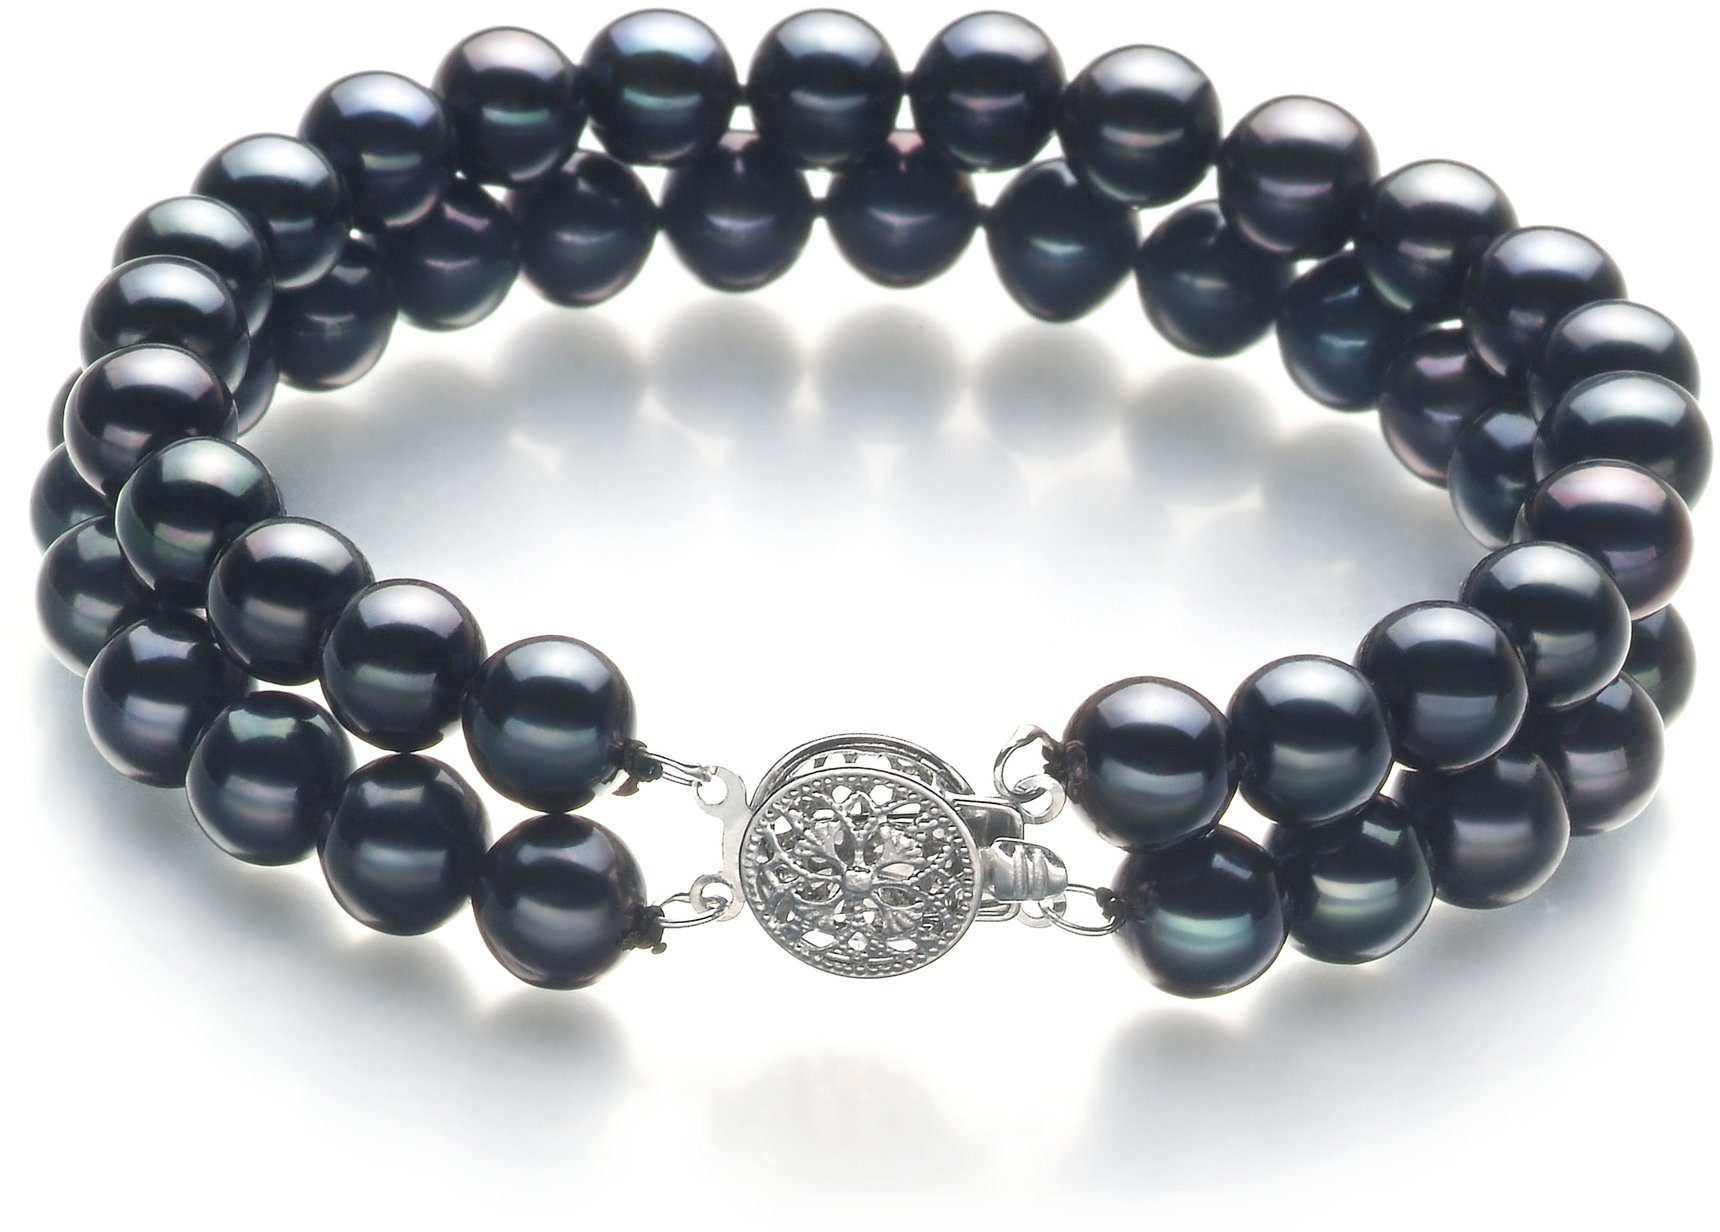 Henrike Black 6-7mm Double Strand AA Quality Freshwater Cultured Pearl Bracelet-8.5 in length